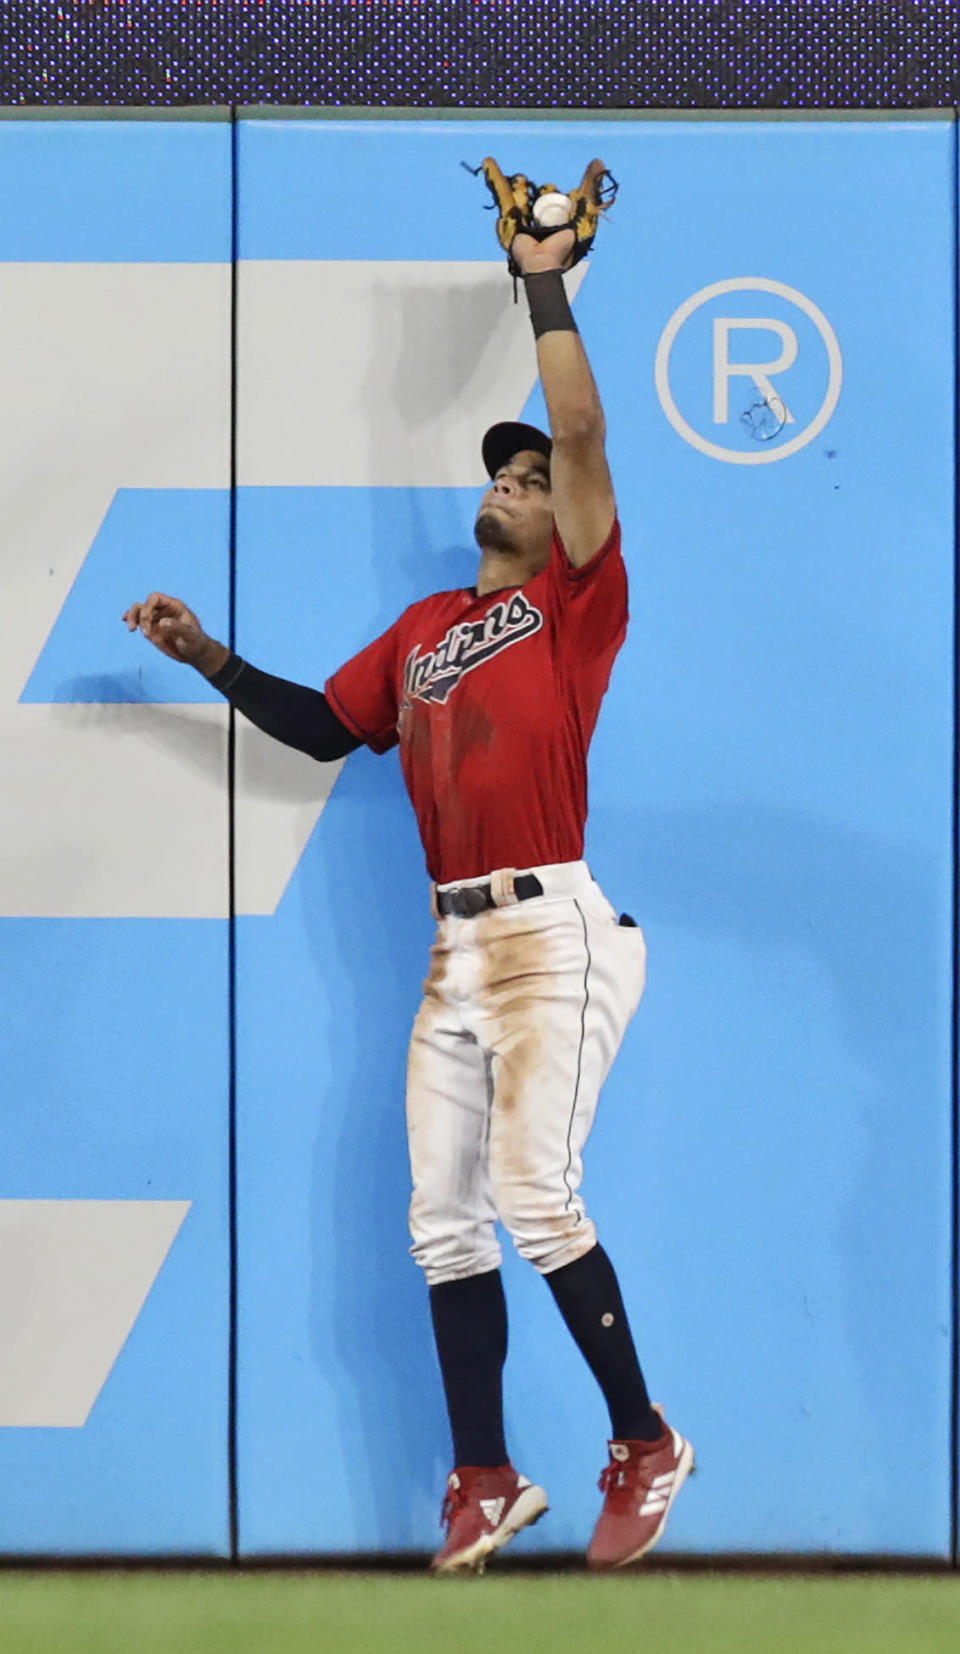 Cleveland Indians' Oscar Mercado catches a ball hit by Philadelphia Phillies' Jay Bruce during the fourth inning in a baseball game Friday, Sept. 20, 2019, in Cleveland. AP Photo/Tony Dejak)